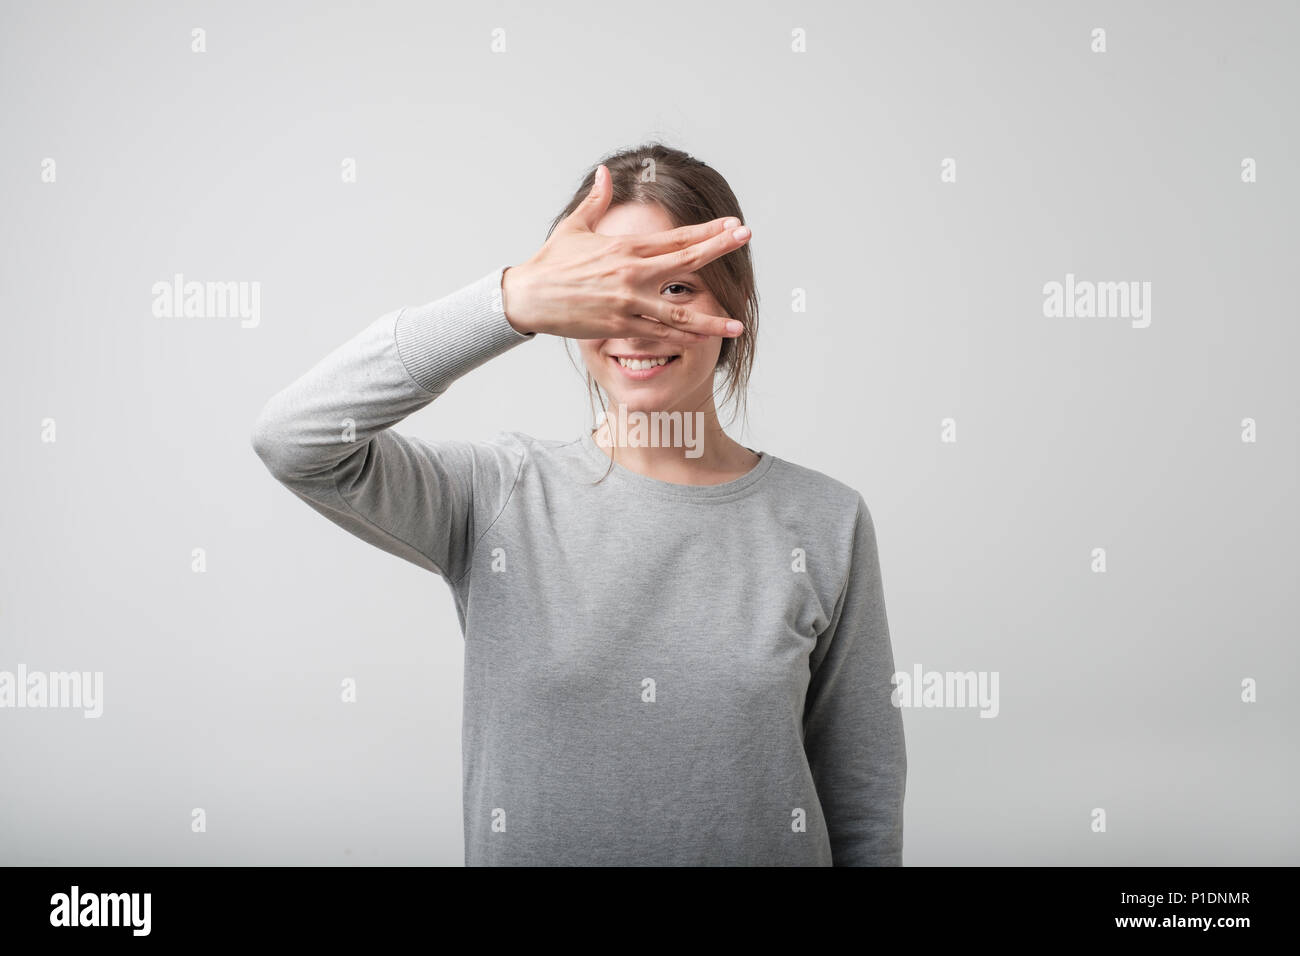 Young happy european female covering her face using hands. - Stock Image